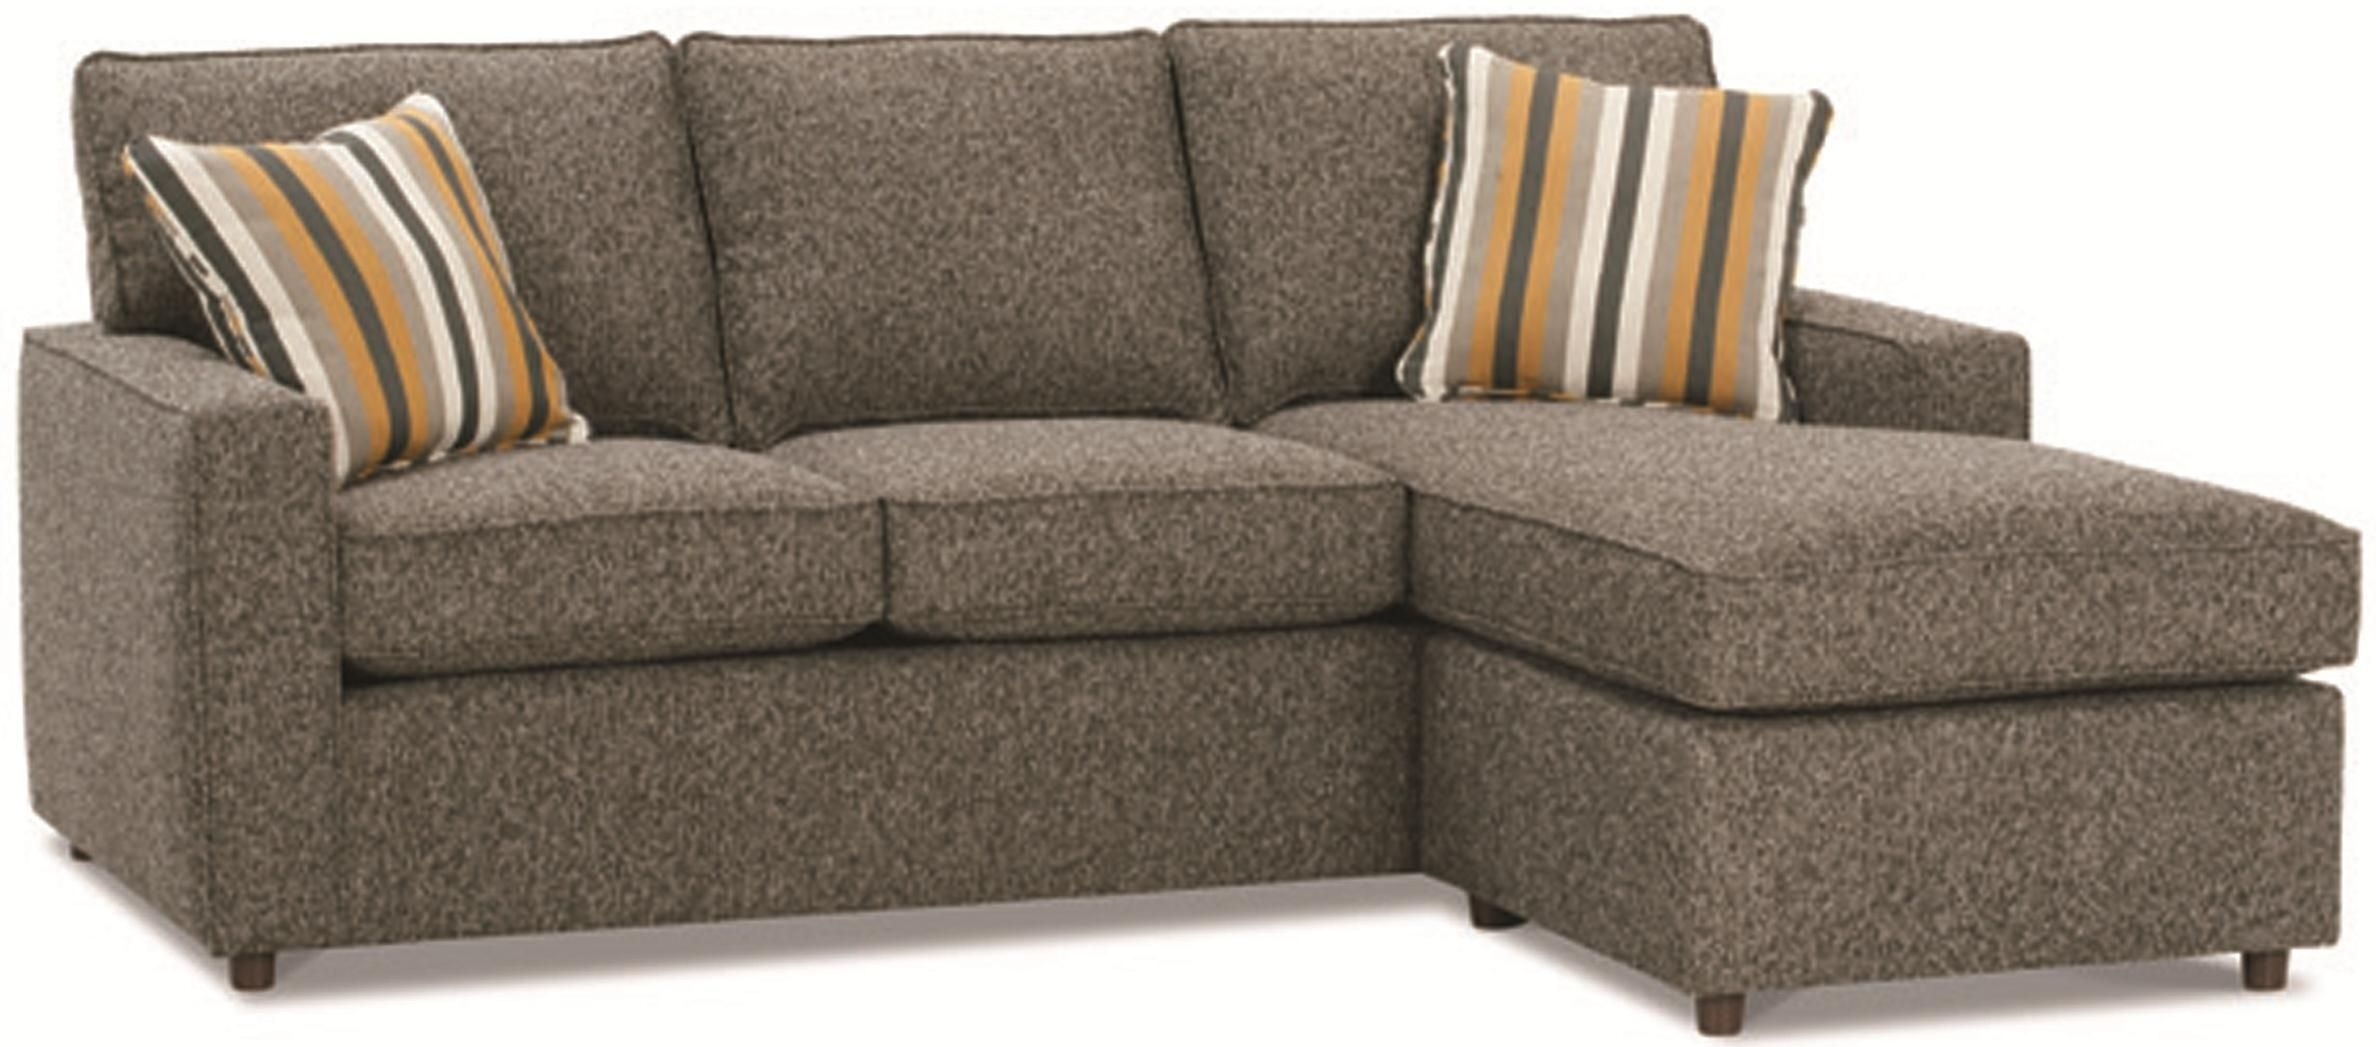 Monaco Contemporary Sofa With Reversible Chaise Ottomanrowe for Minneapolis Sectional Sofas (Image 3 of 10)